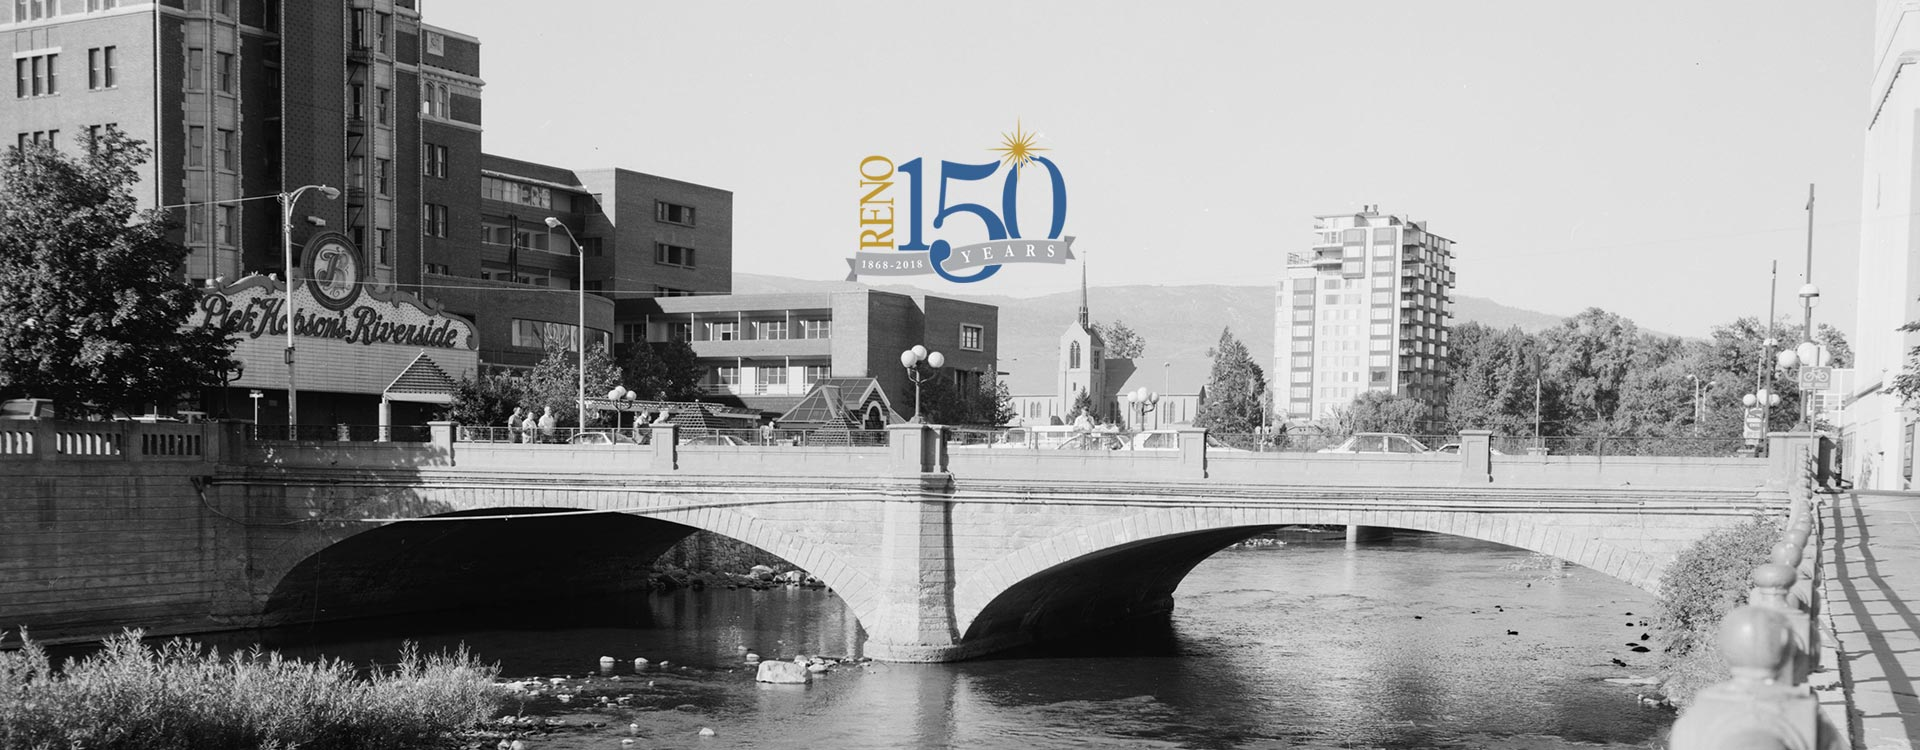 Old image of Virginia Street Bridge in Reno with Reno 150 logo